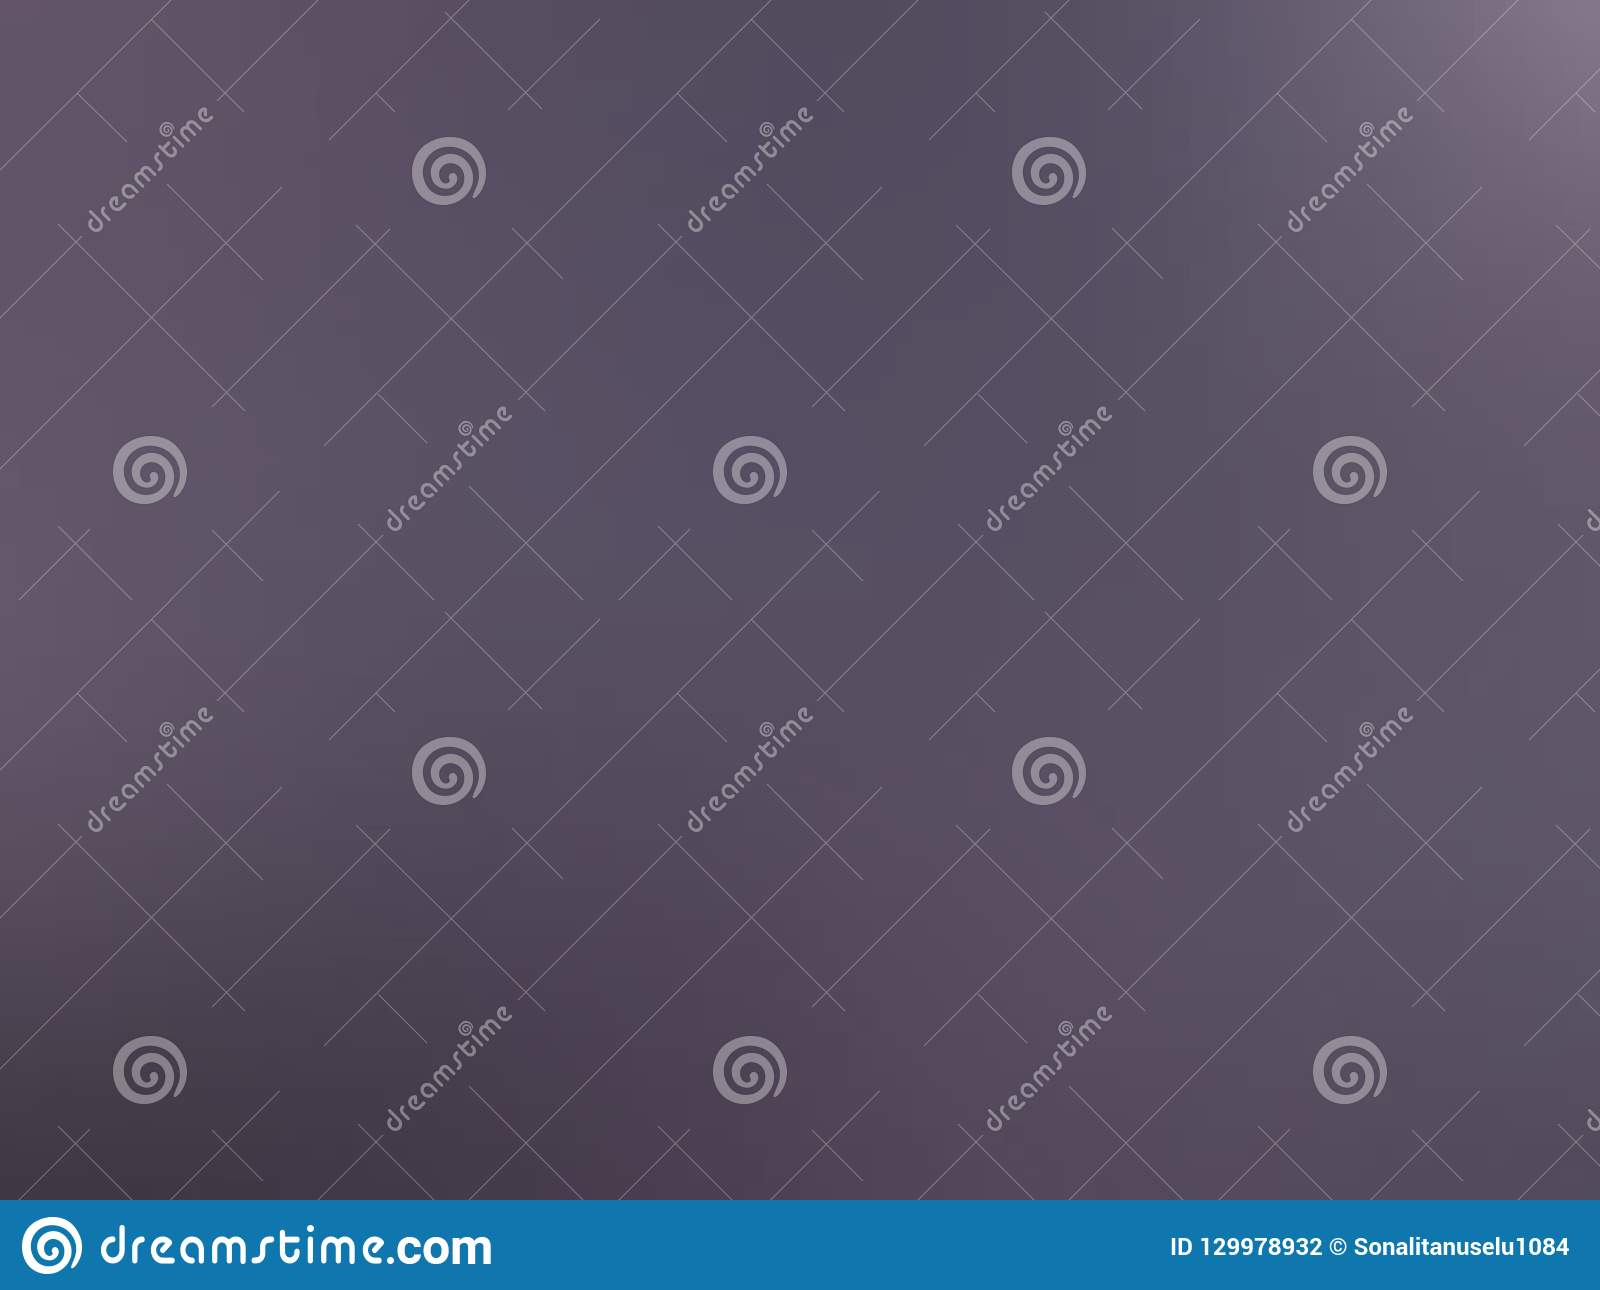 Colorful blur abstract background vector design, colorful blurred shaded background, vivid color vector illustration.